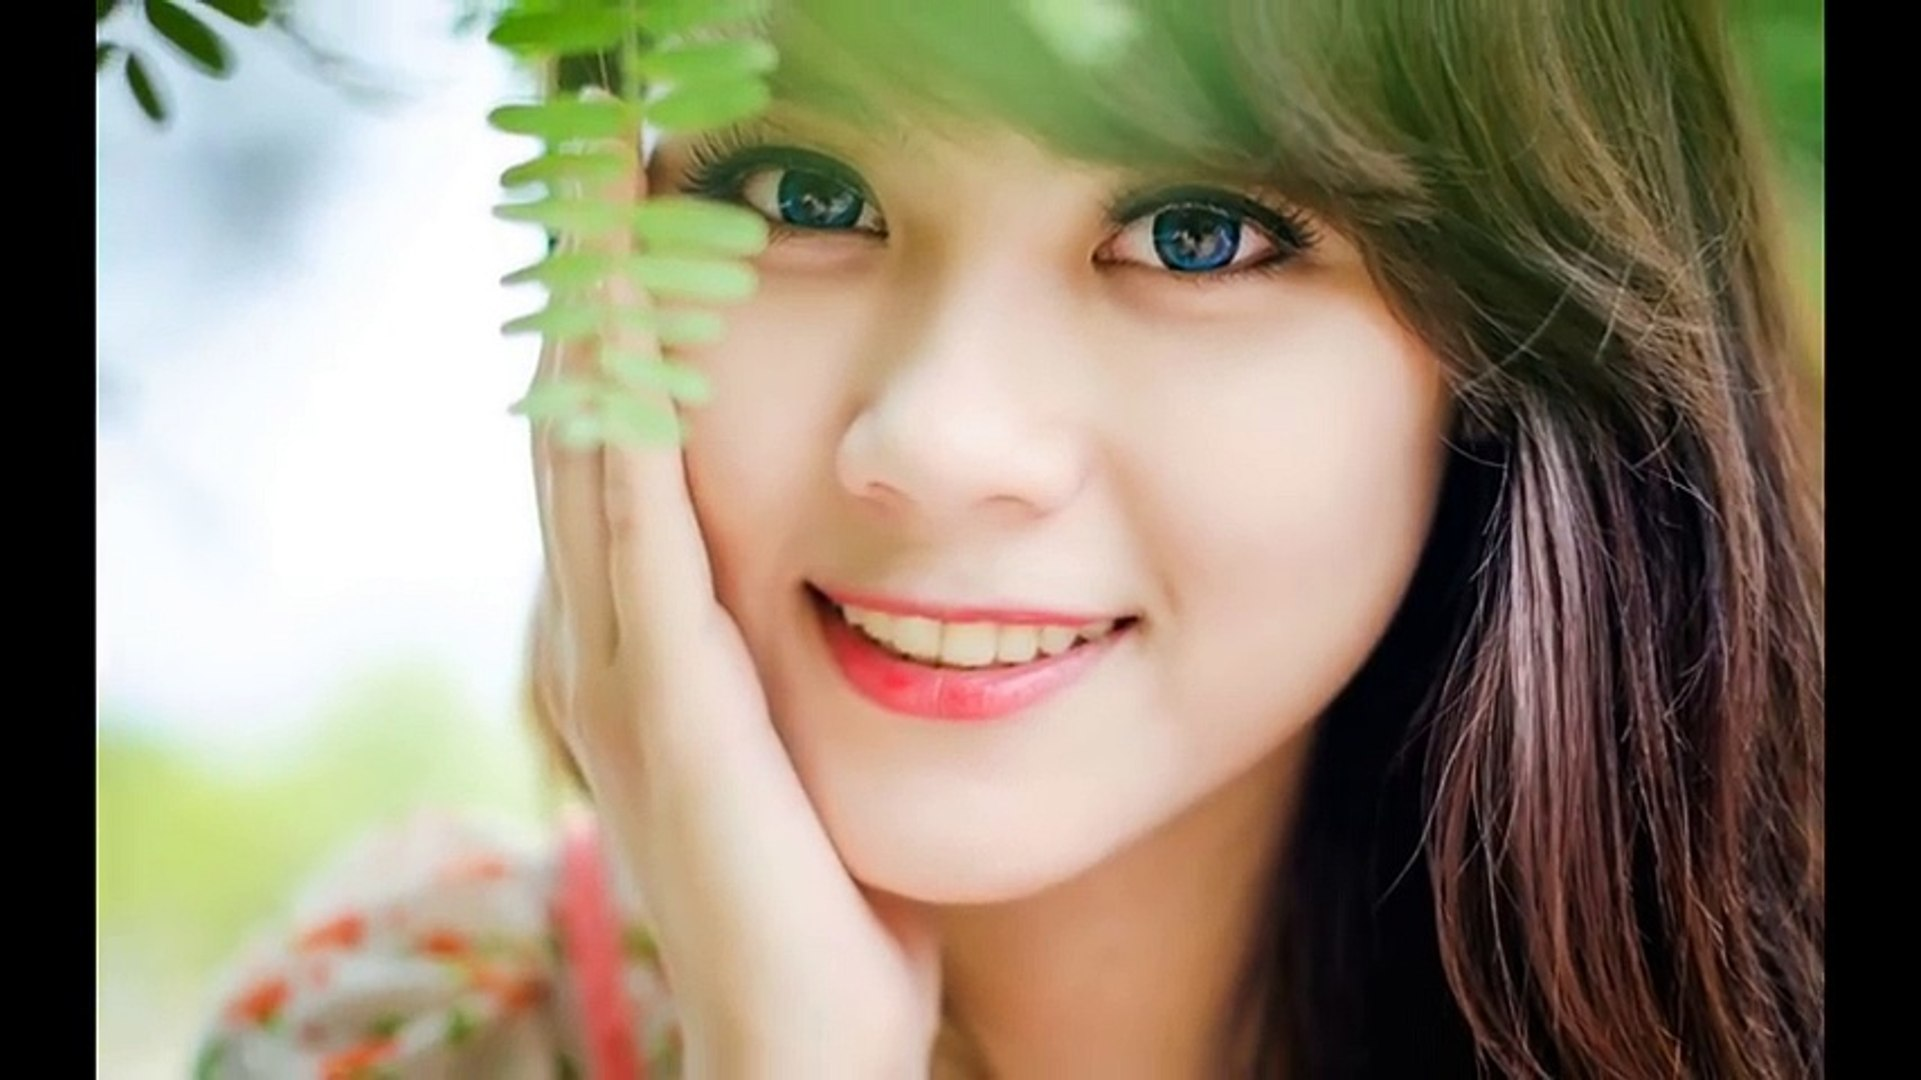 Most beautiful girls face pictures __ Pics face girl beautiful